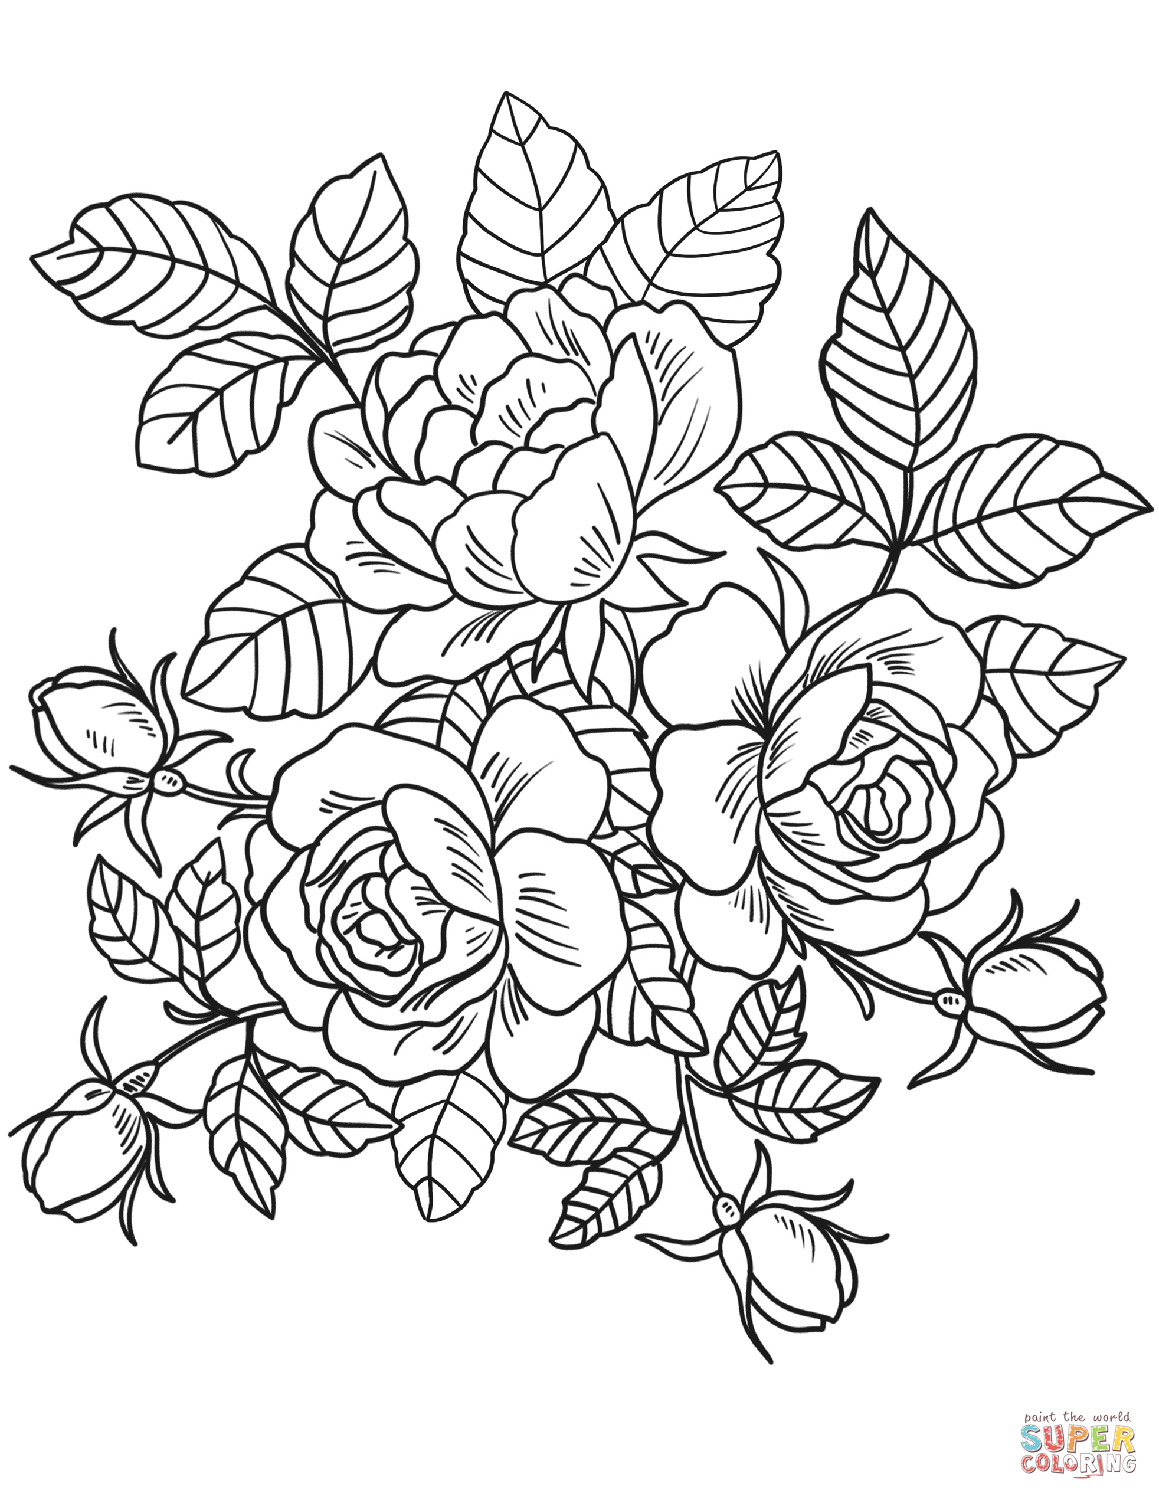 colouring pictures of plants roses flowers coloring page free printable coloring pages of plants pictures colouring